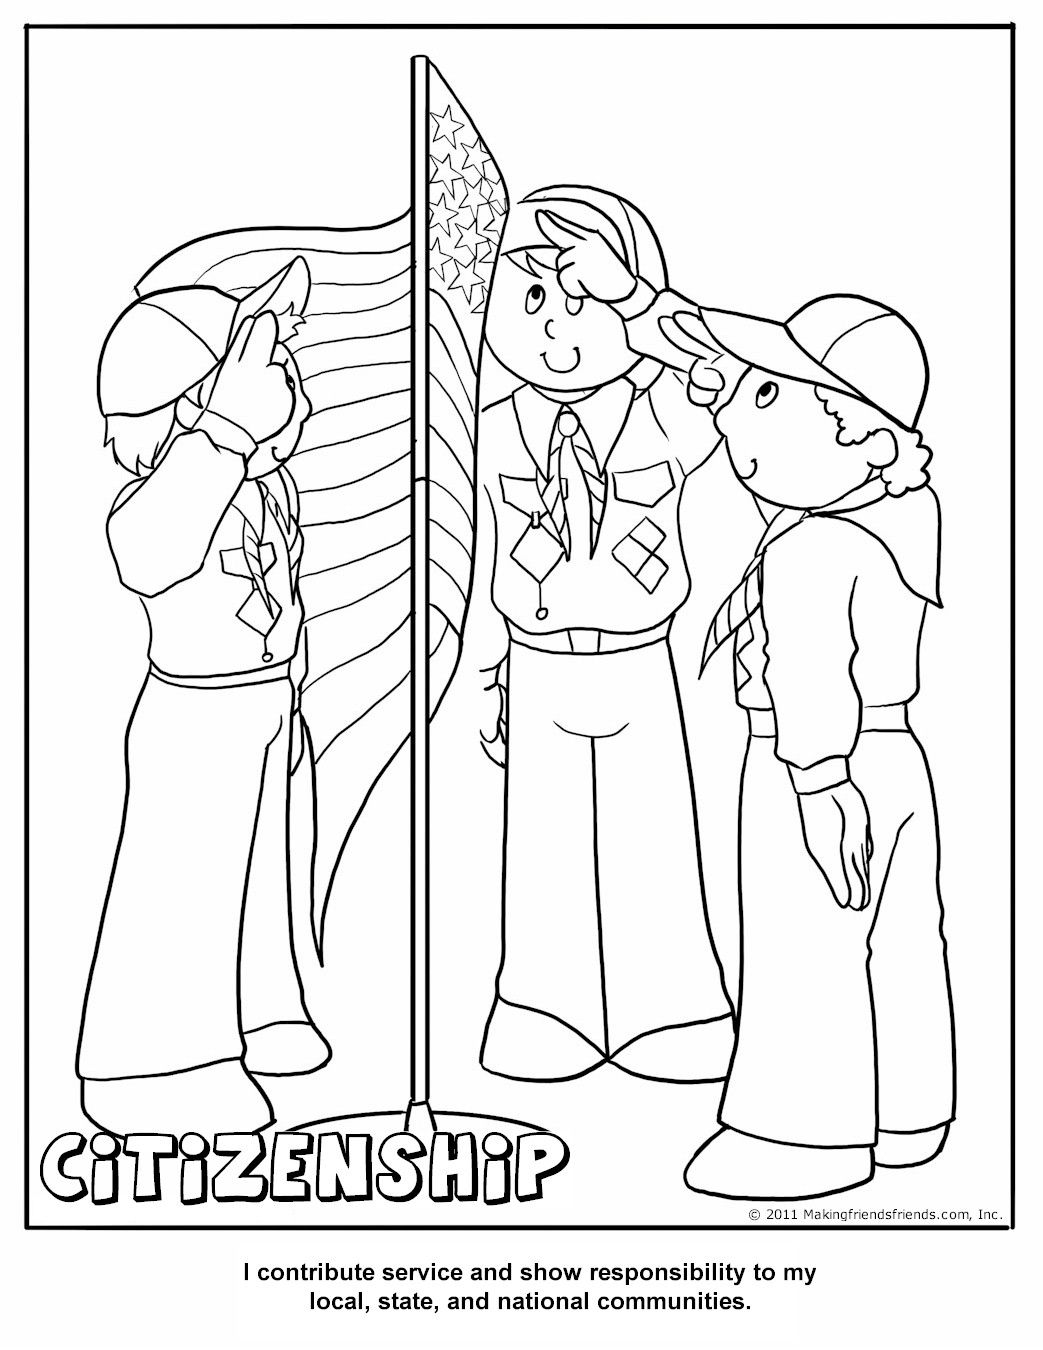 Printable Citizenship Coloring Page